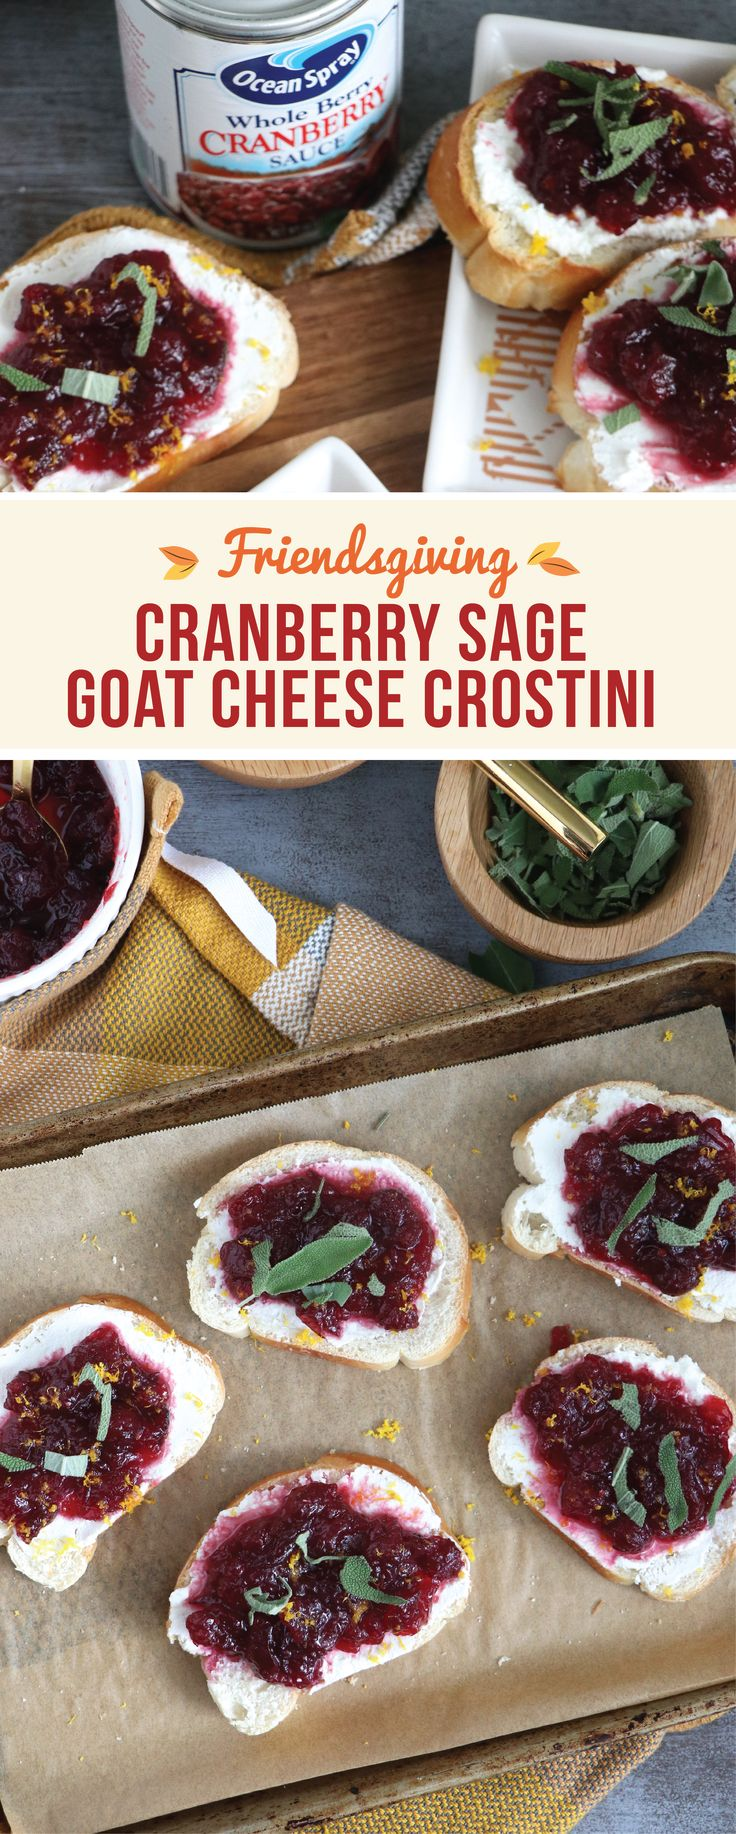 Kick off your Friendsgiving feast with an appetizer fit for the holidays! This recipe for Cranberry Sage Goat Cheese Crostini is one dish that may just become a staple on your party menu all season long—largely due to the tasty and festive Ocean Spray® Whole Berry Cranberry Sauce! To get ready for your fall celebration, pick up all the ingredients and entertaining essentials you need at Walmart.